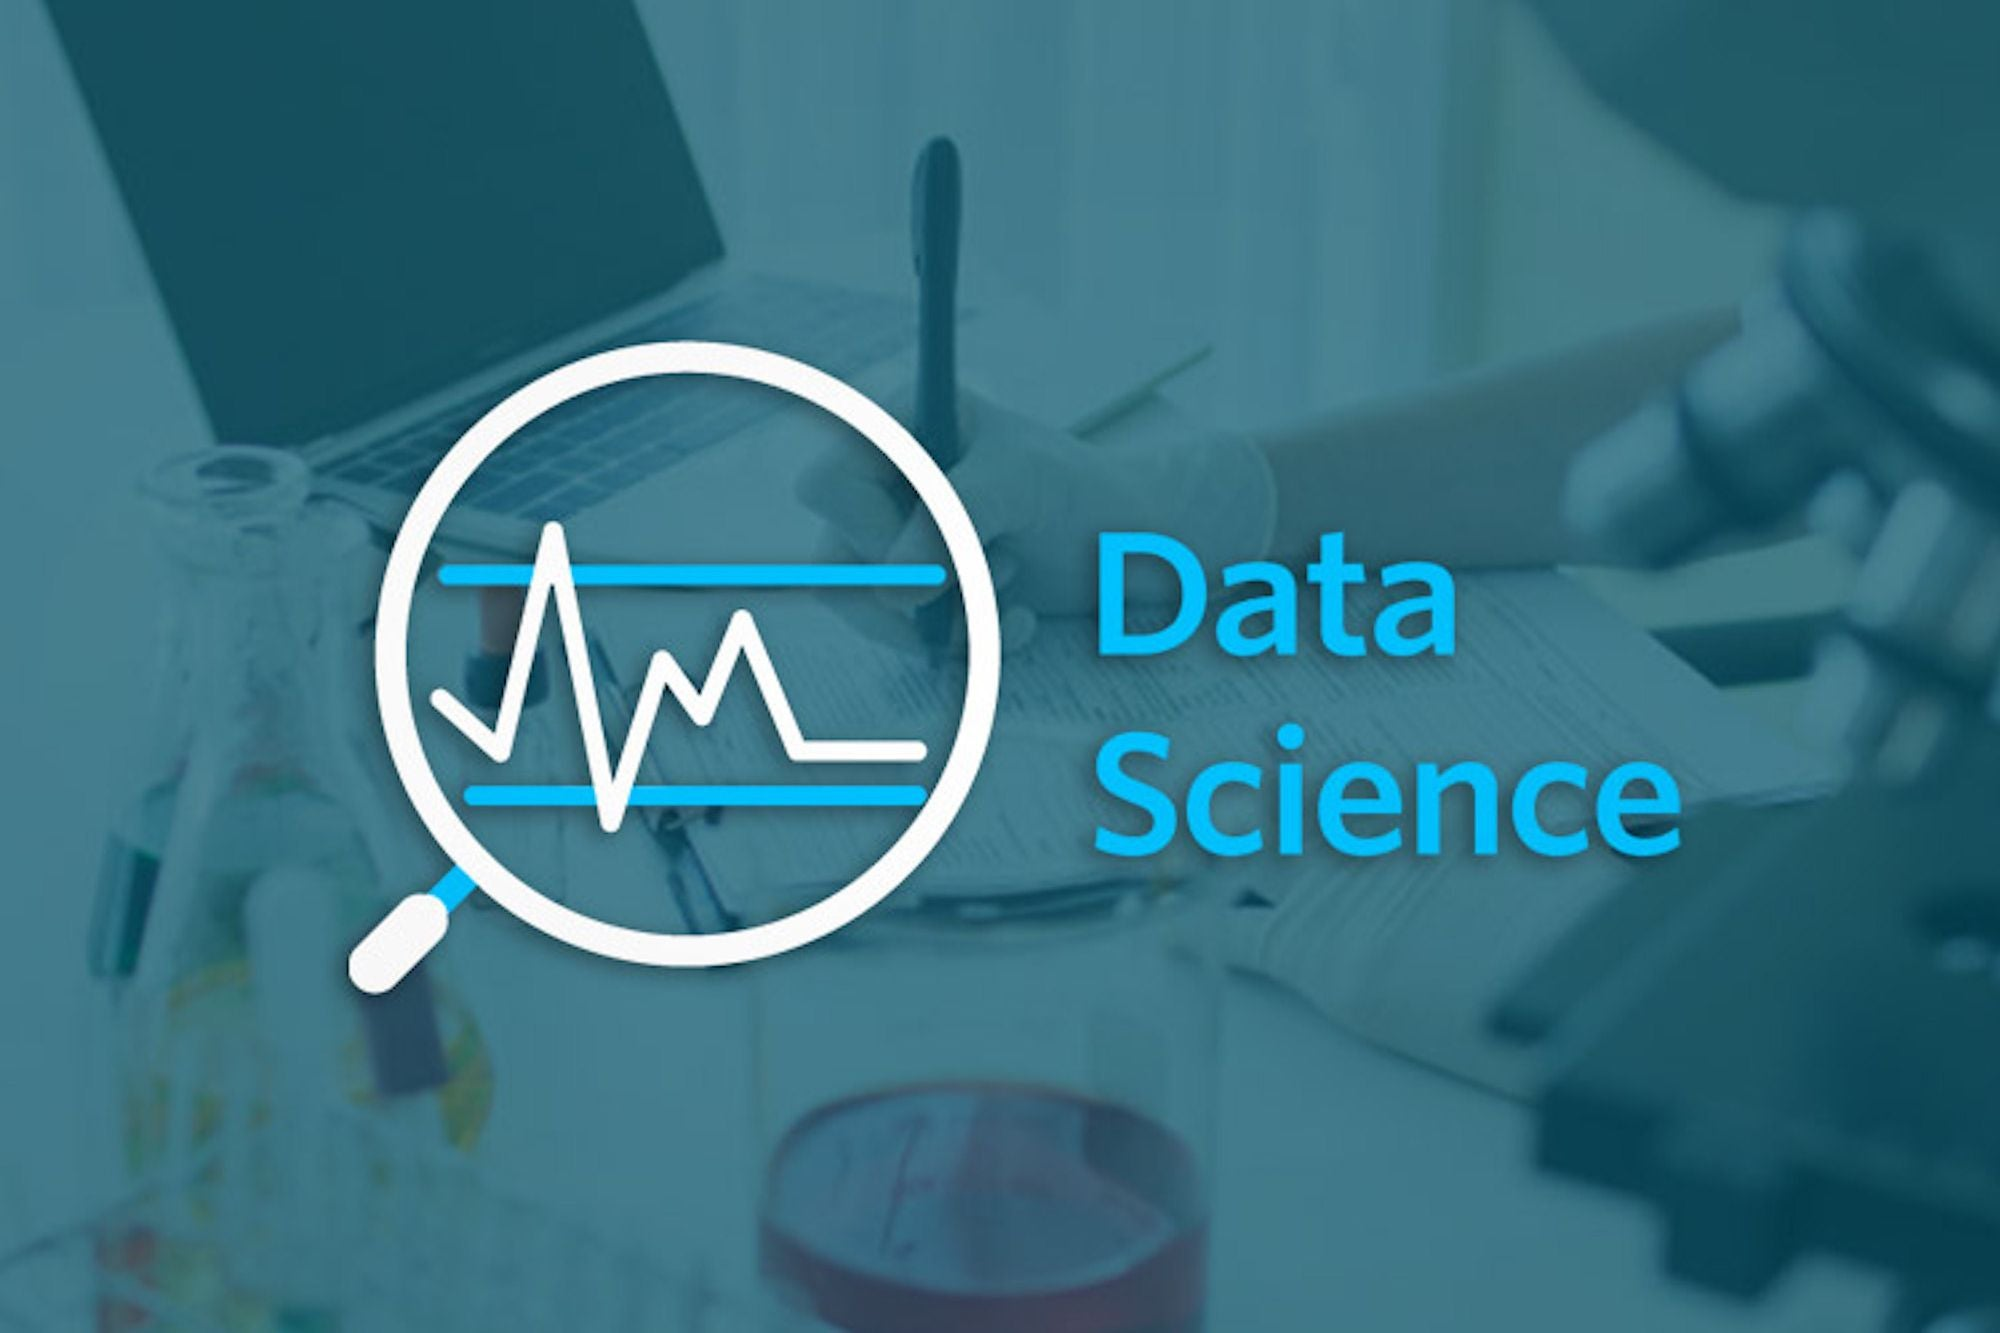 Dive into Data Science With These Discounted Courses